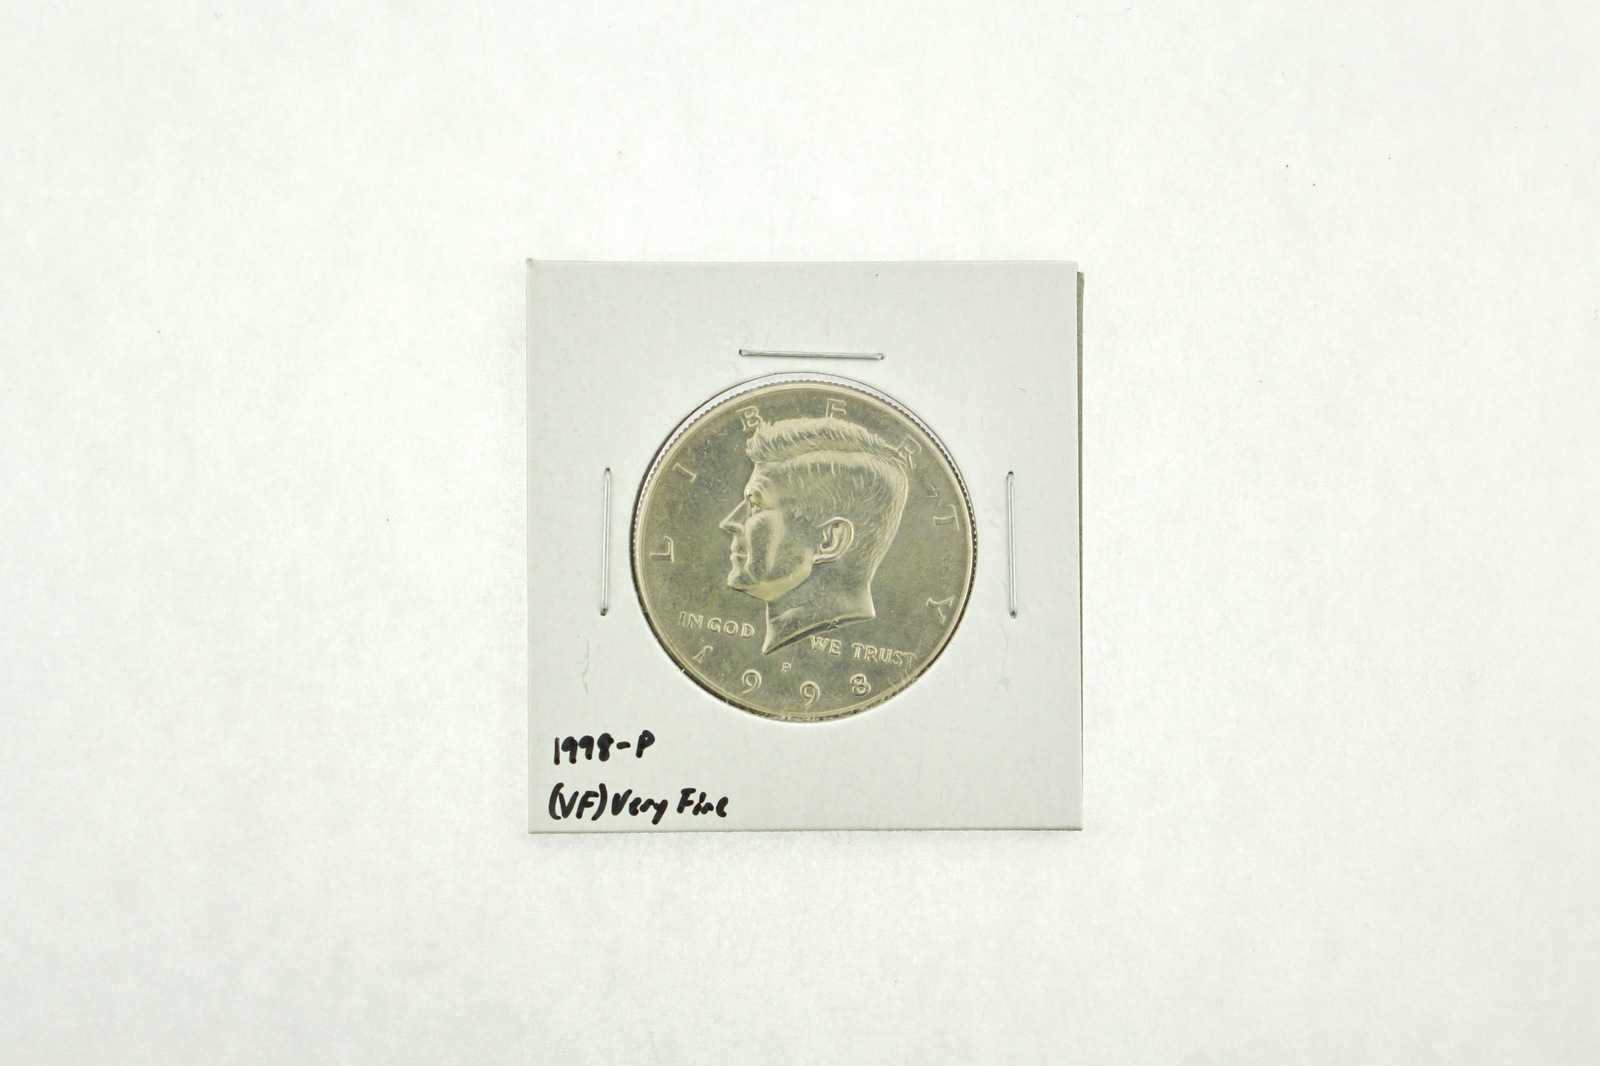 1998-P Kennedy Half Dollar (VF) Very Fine N2-3951-3